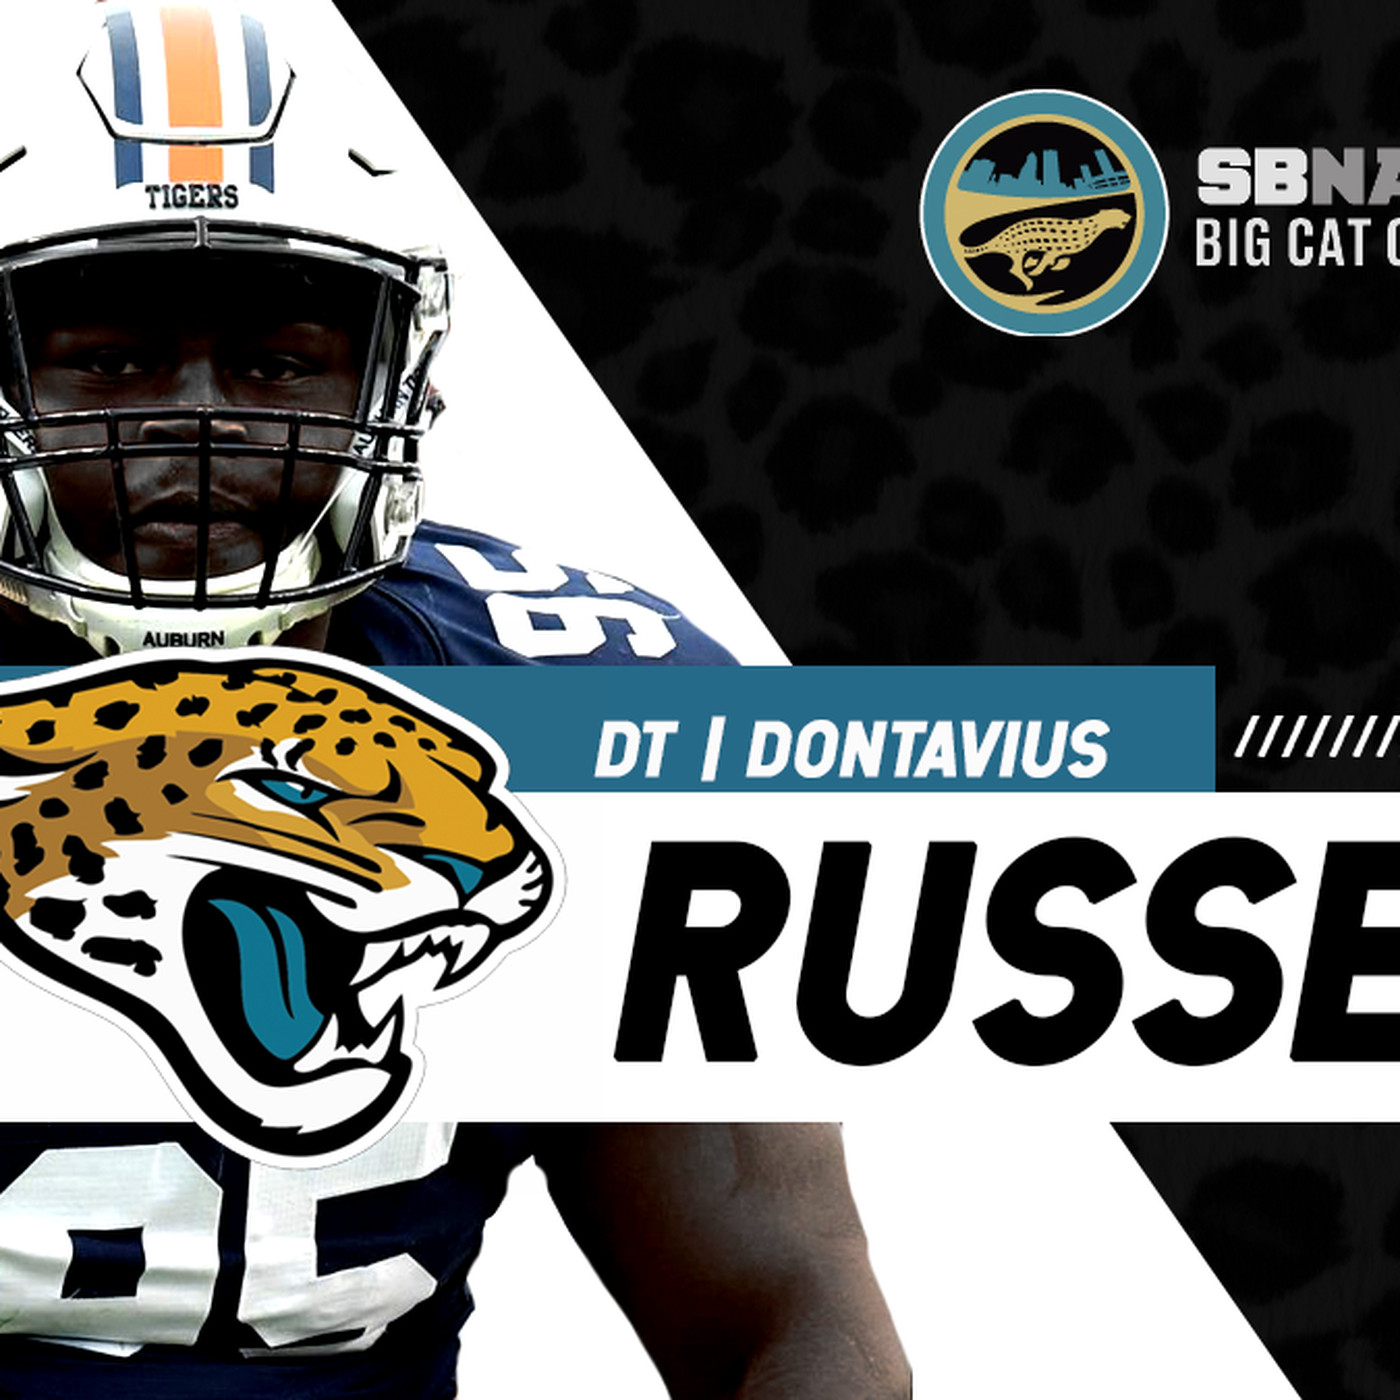 sports shoes c012d 7ed9e What are the Jaguars getting in Dontavius Russell? - Big Cat ...